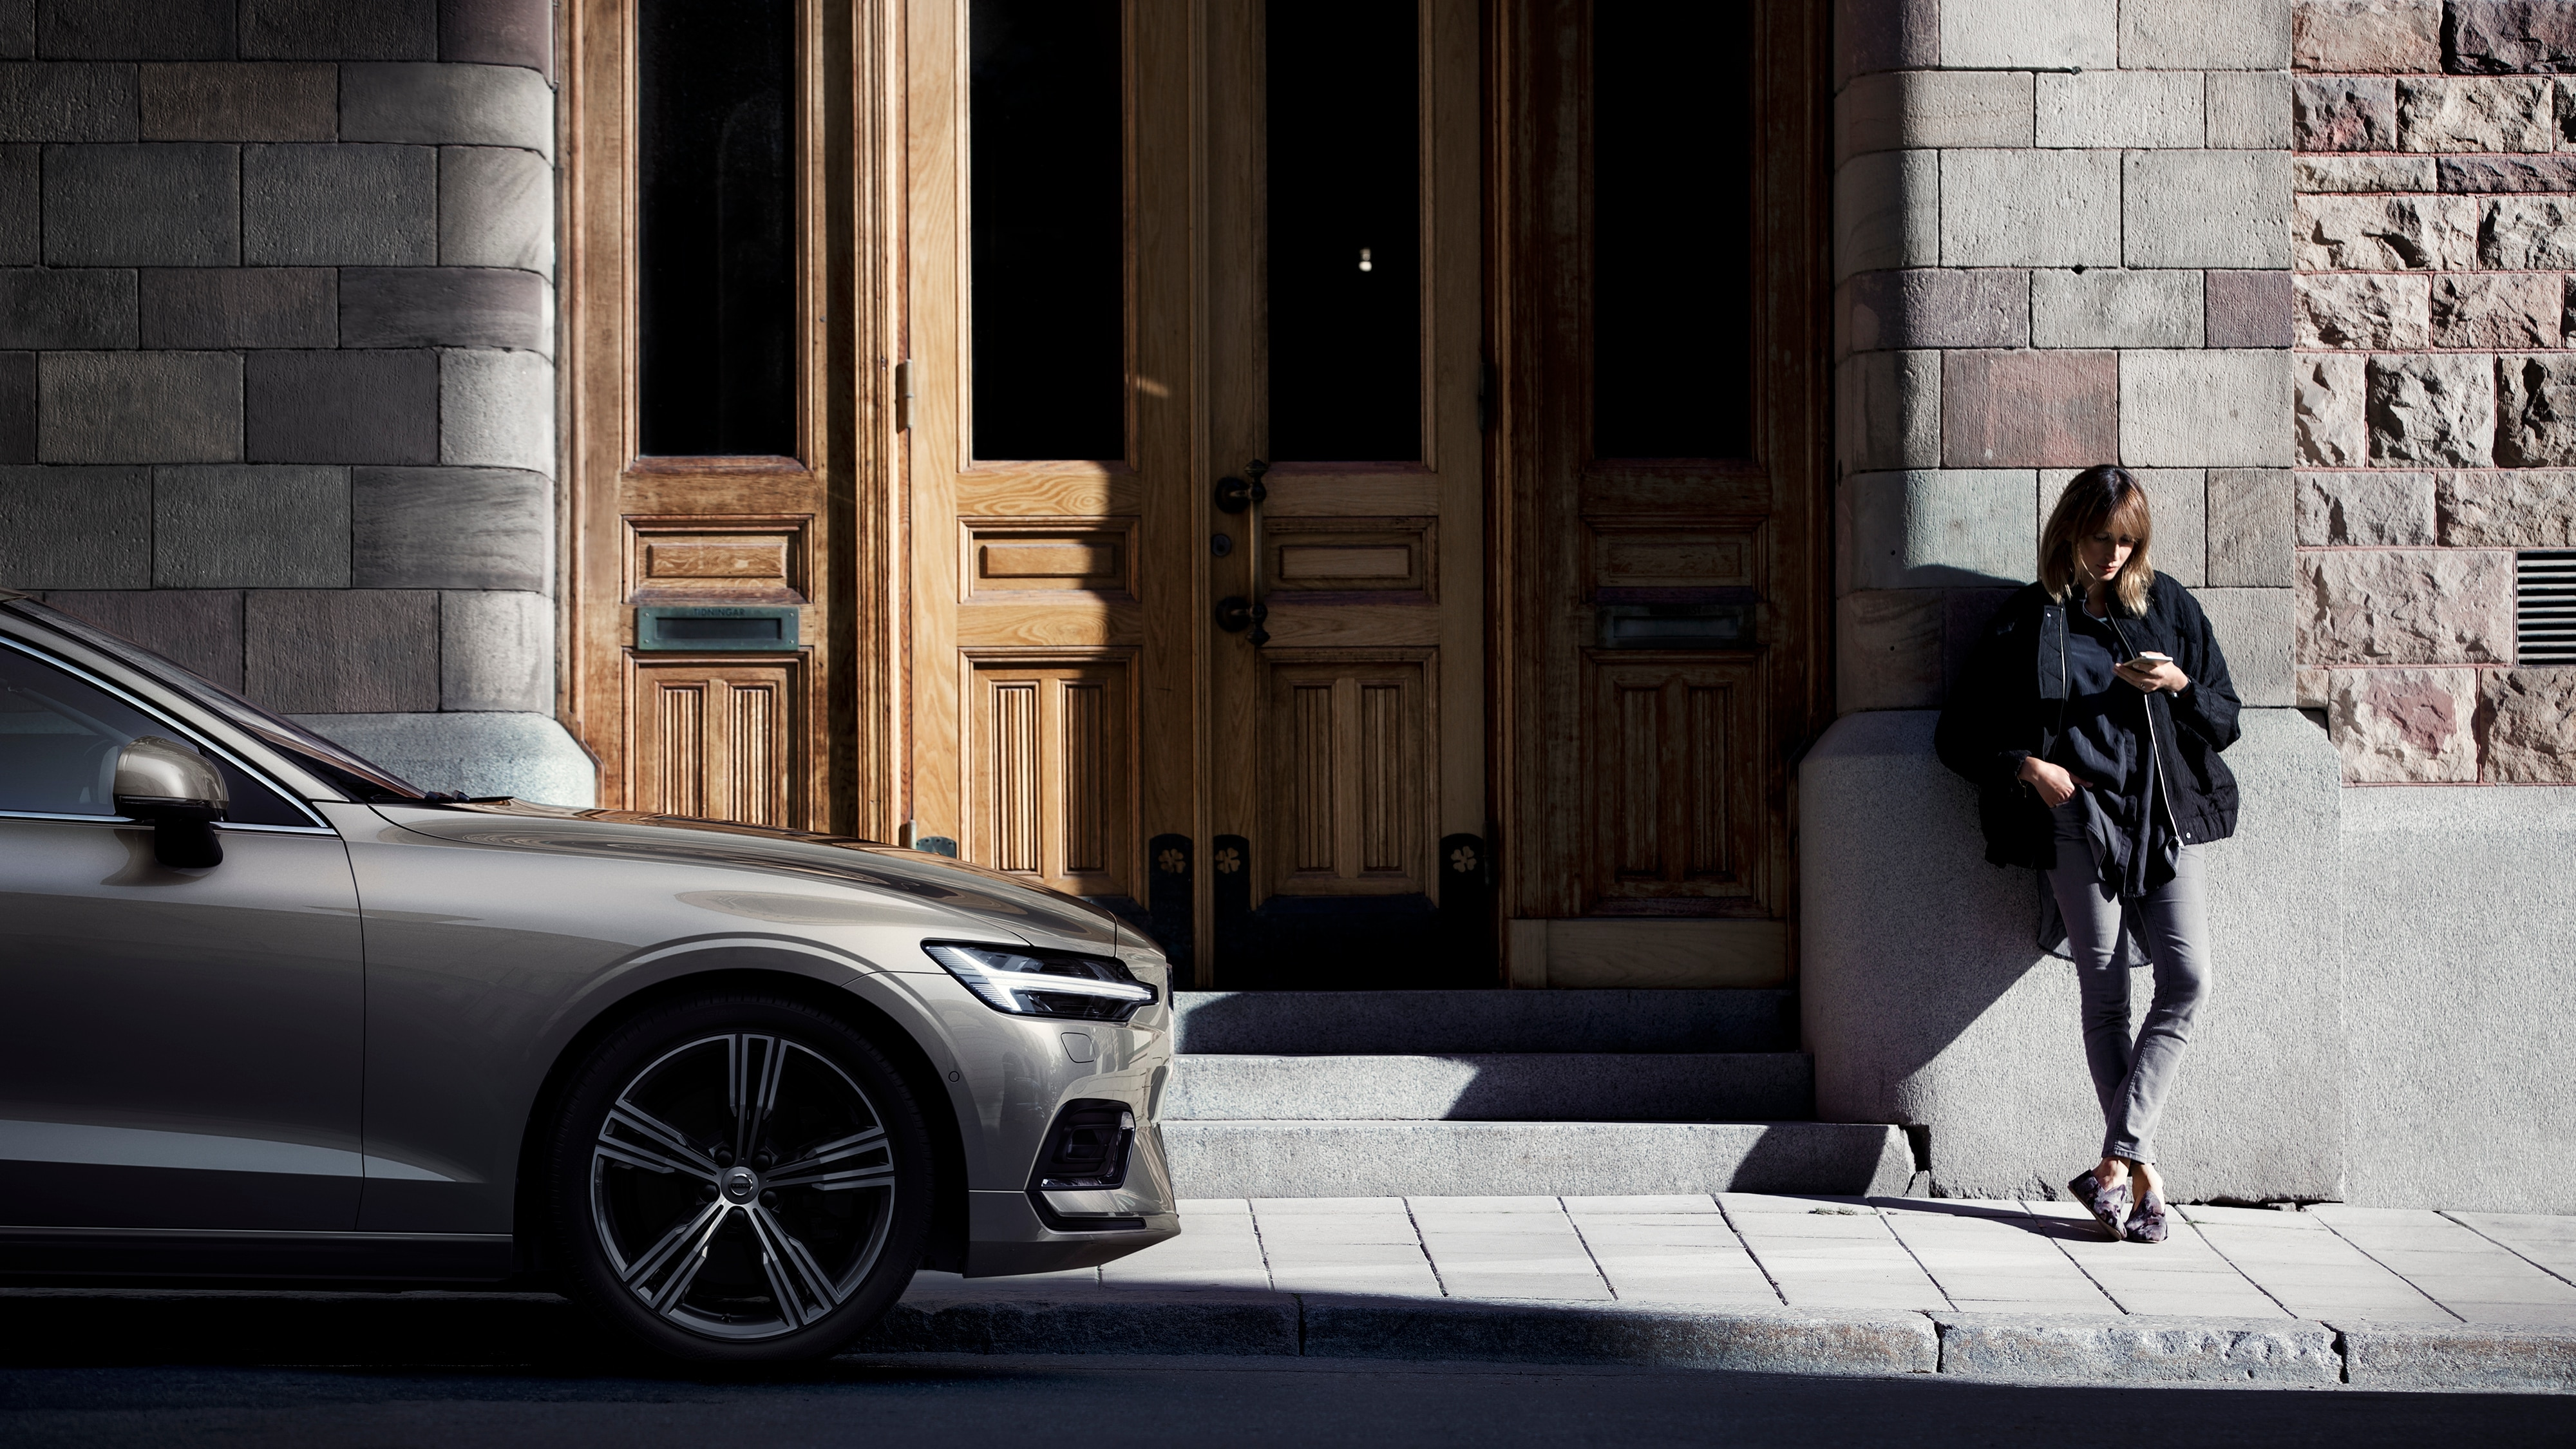 Young Volvo driver stands outside the entrance to an old building with her Volvo V60 parked on the street to her right.